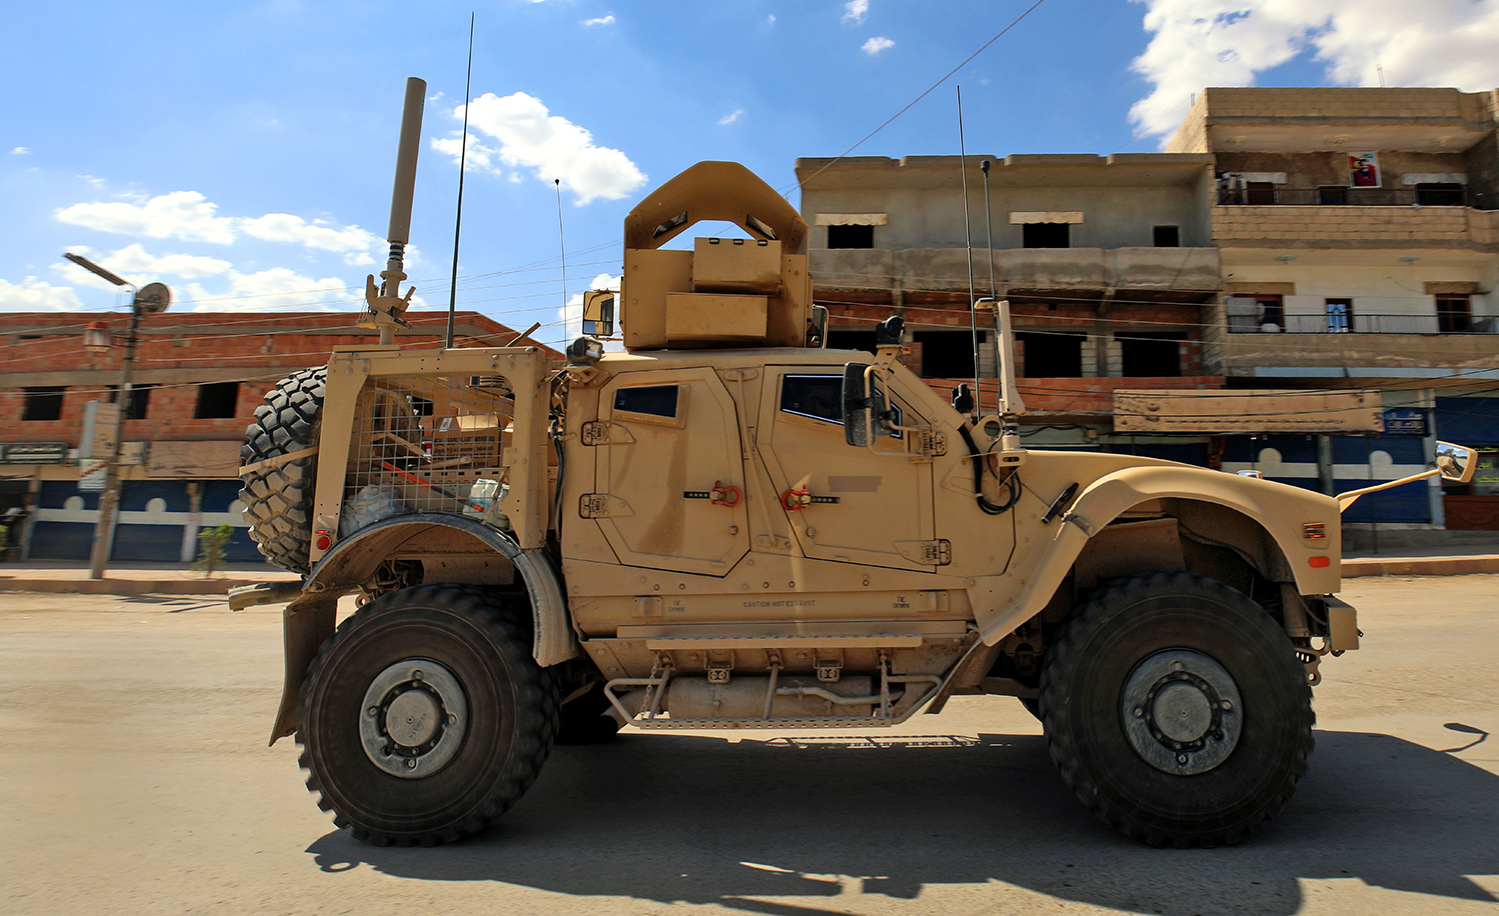 An armored vehicle in Syria. DELIL SOULEIMAN/AFP/Getty Images.